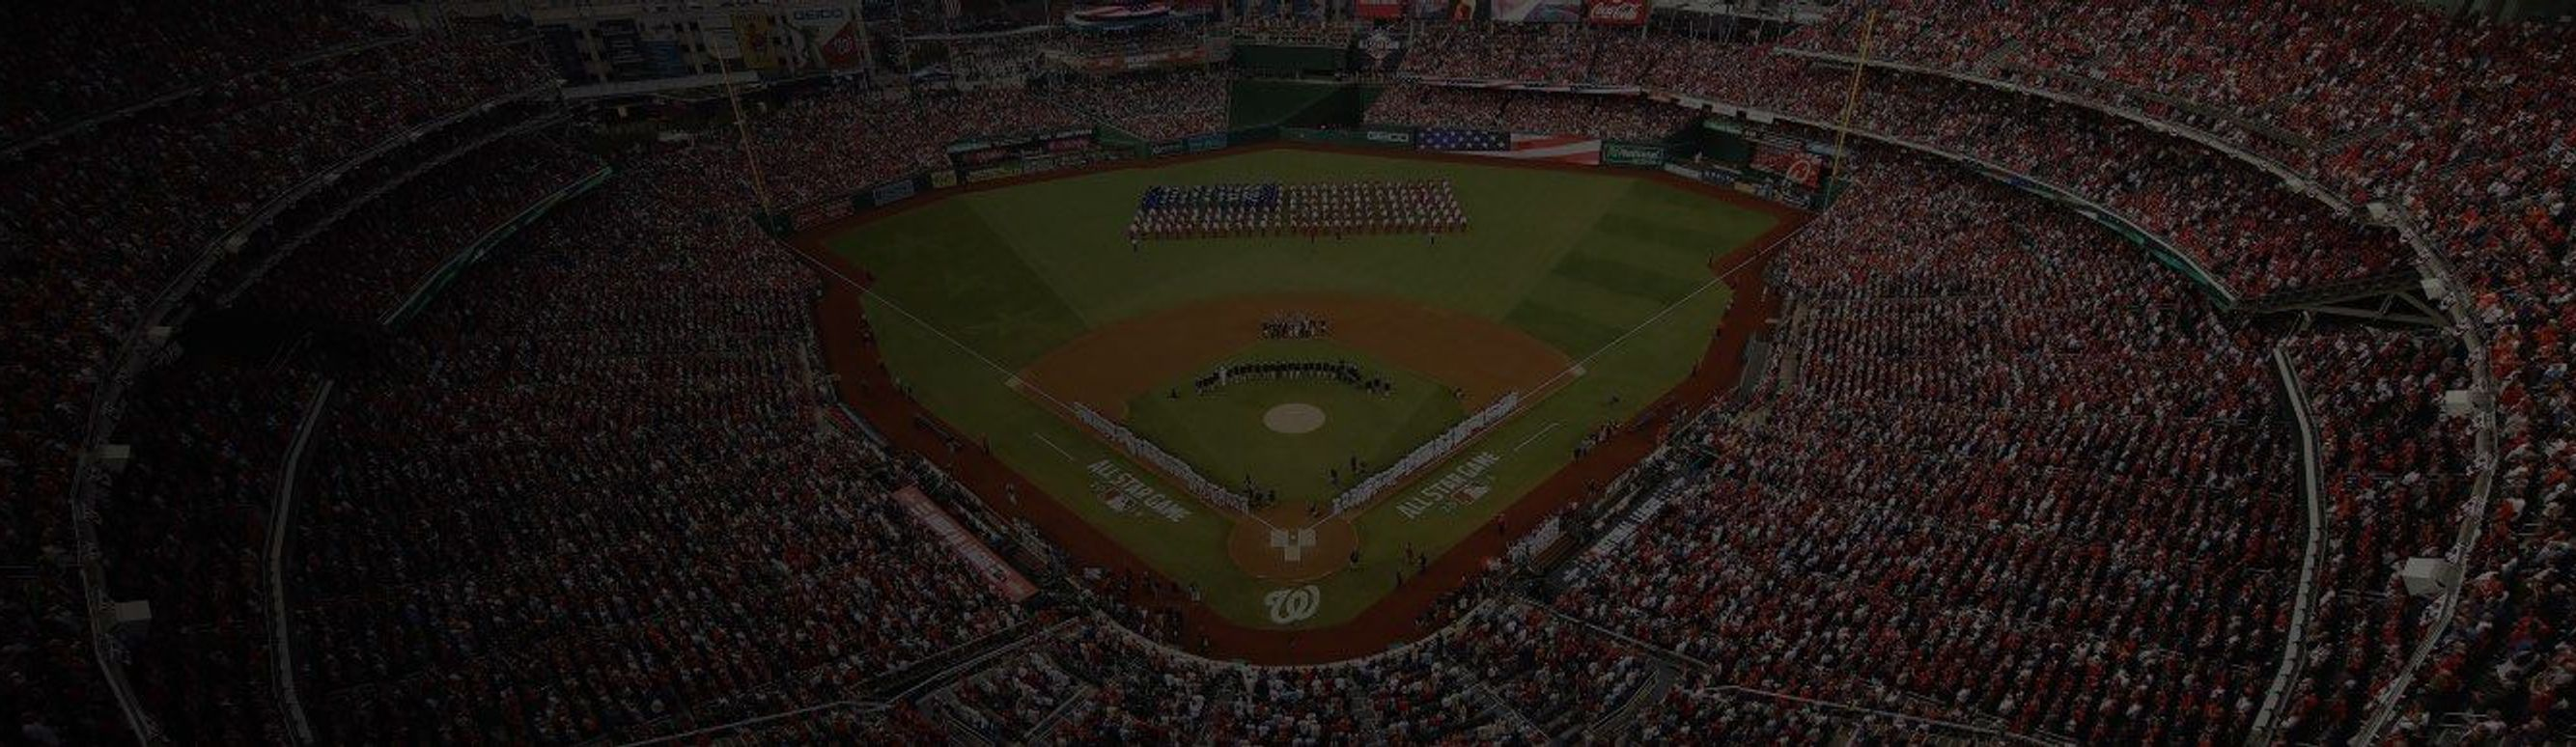 Bird's eye view of Washington National's baseball game during pre-game flag display